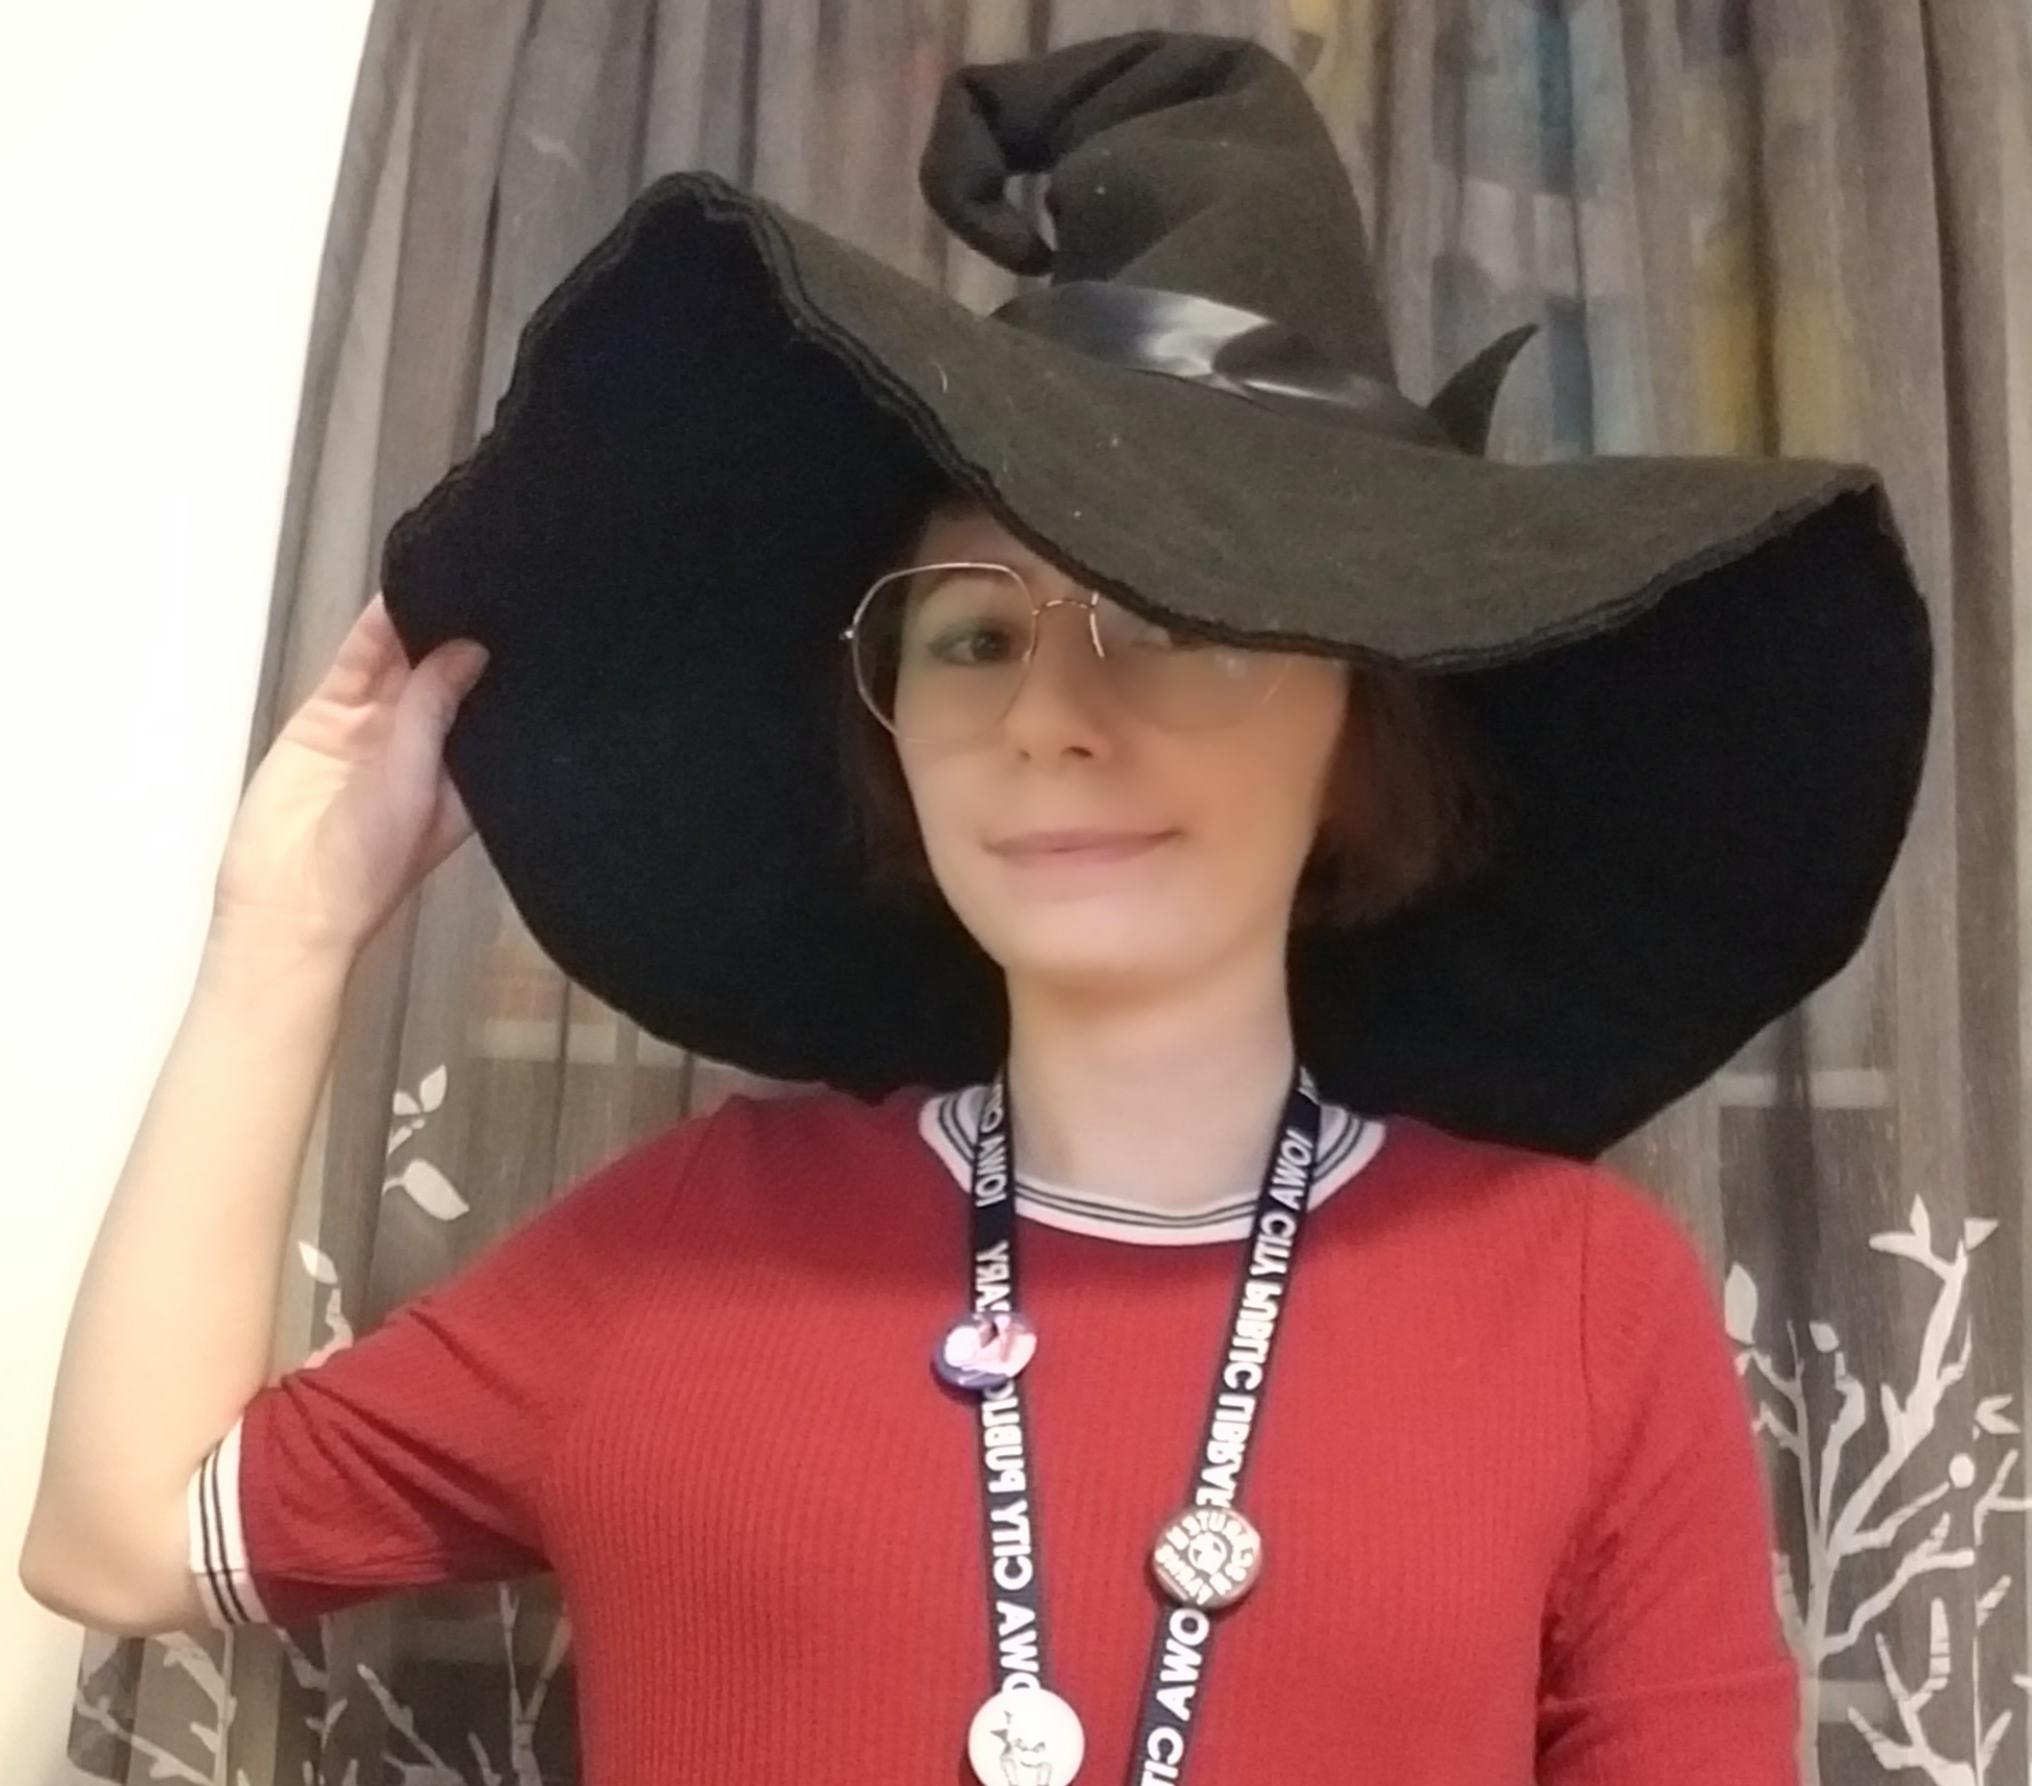 The author wearing a witch hat.